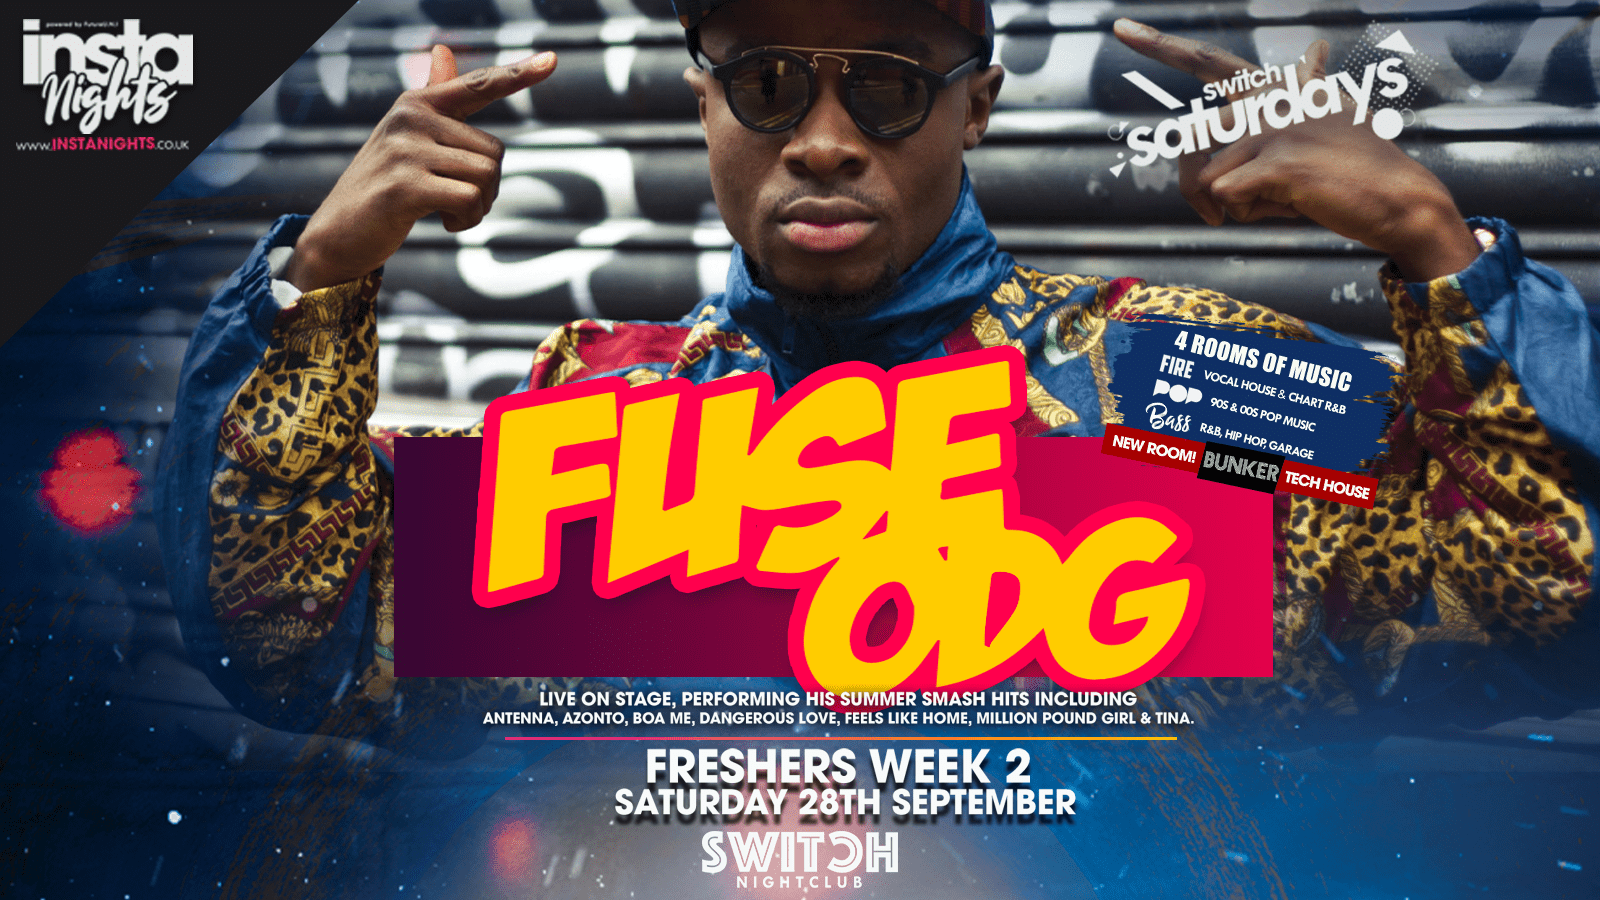 Switch Saturdays Present Fuse ODG